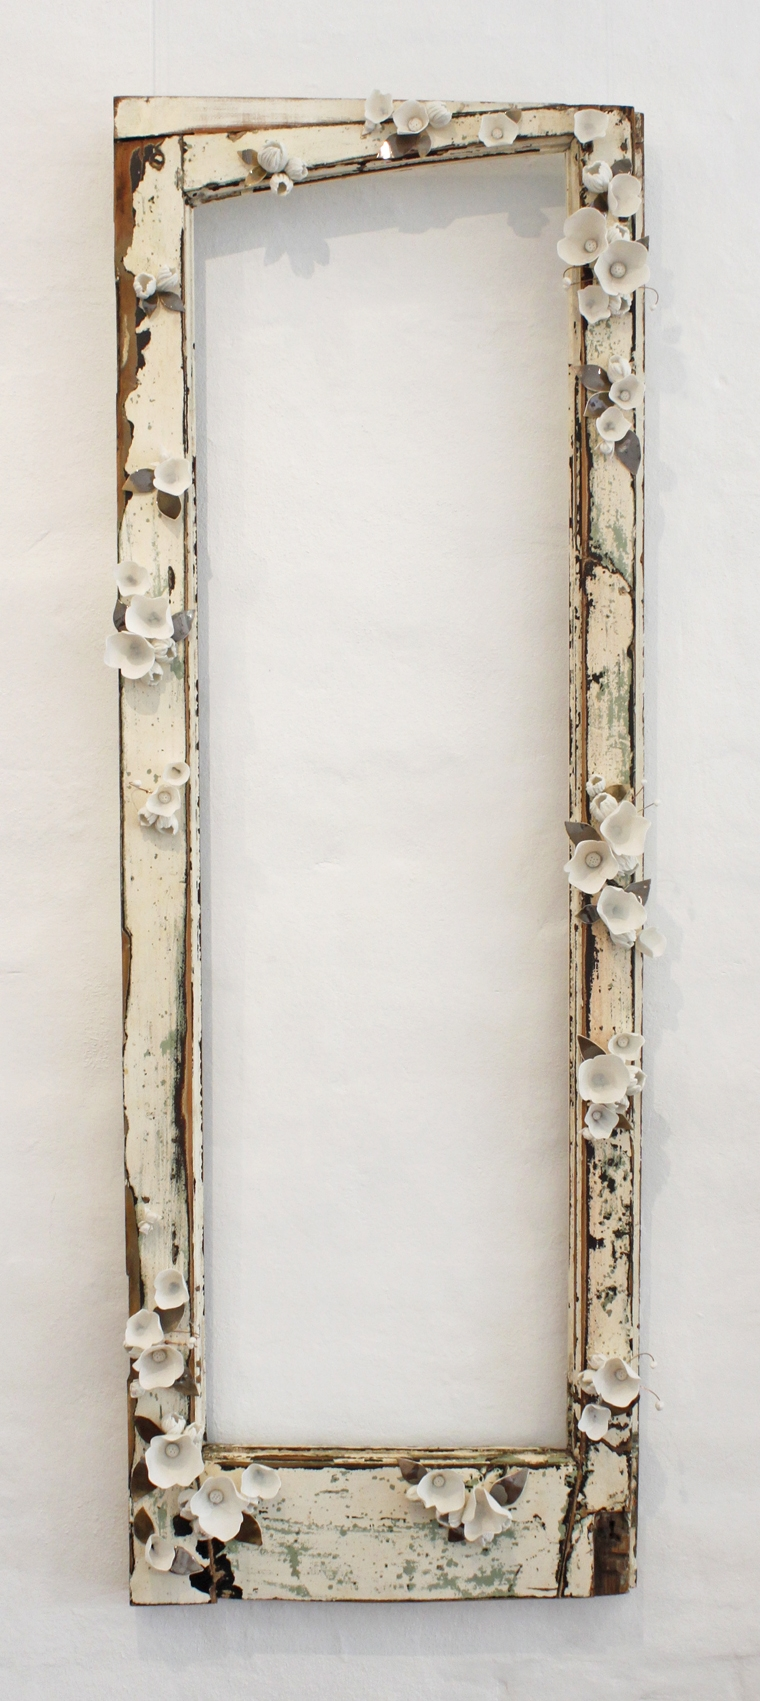 Amy Hick,  French Door no.2 , 2015. Hand built imperial porcelain, French door frame, clear glaze, bronze glaze, copper wire, approximately 144x50x10cm  Photography: Madeline Young